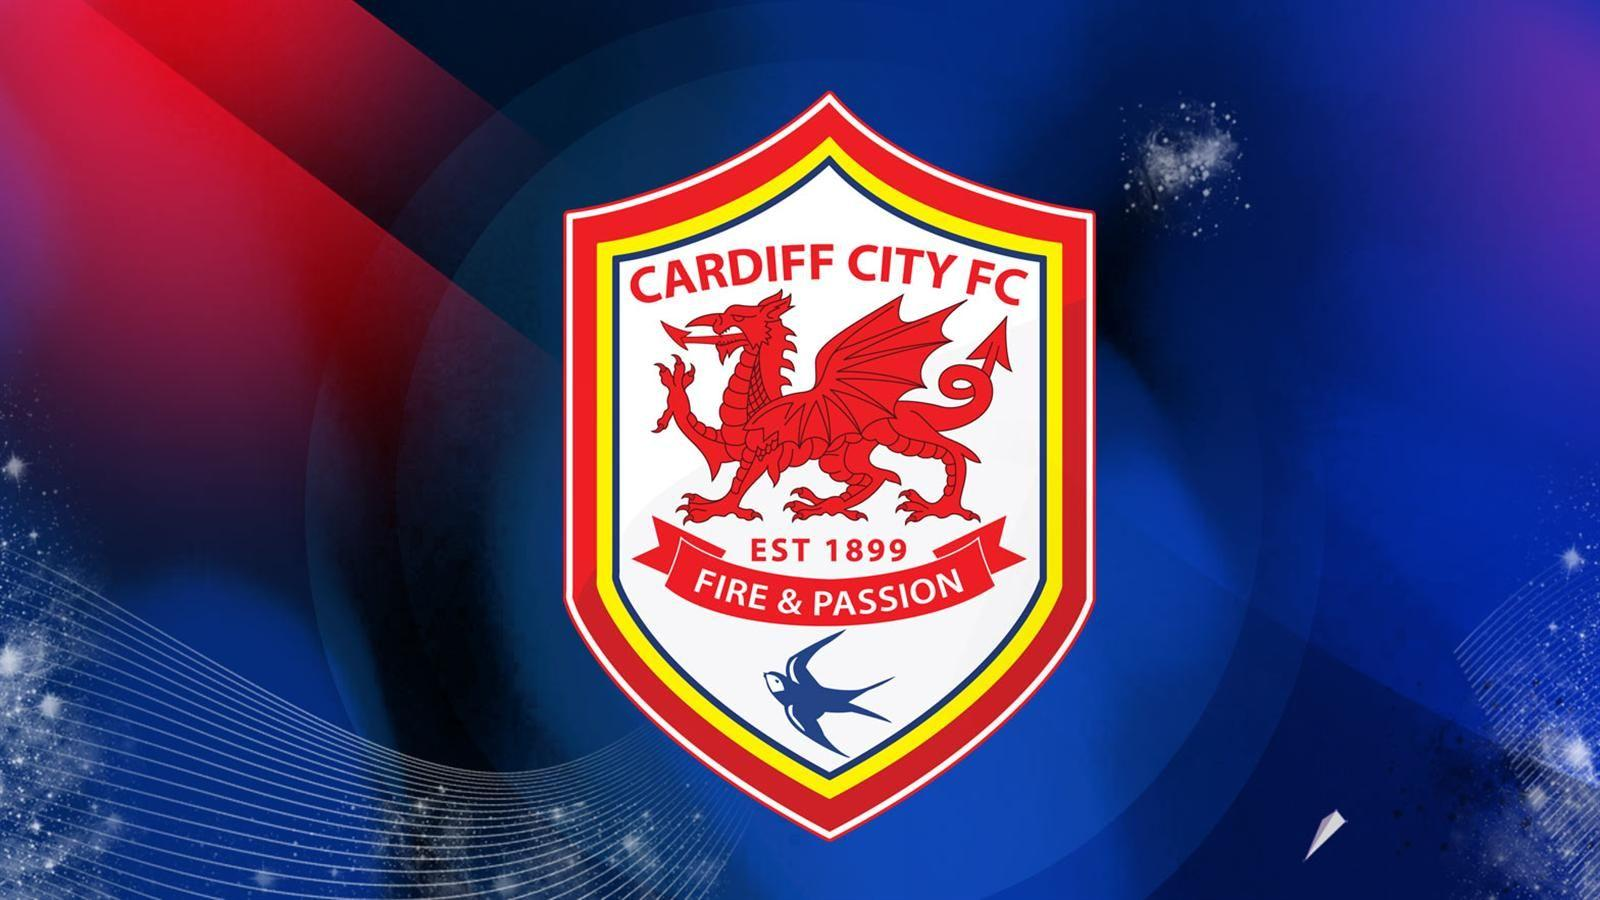 Cardiff City FC Badge Wallpaper | Wallpapers | Pinterest | Cardiff ...